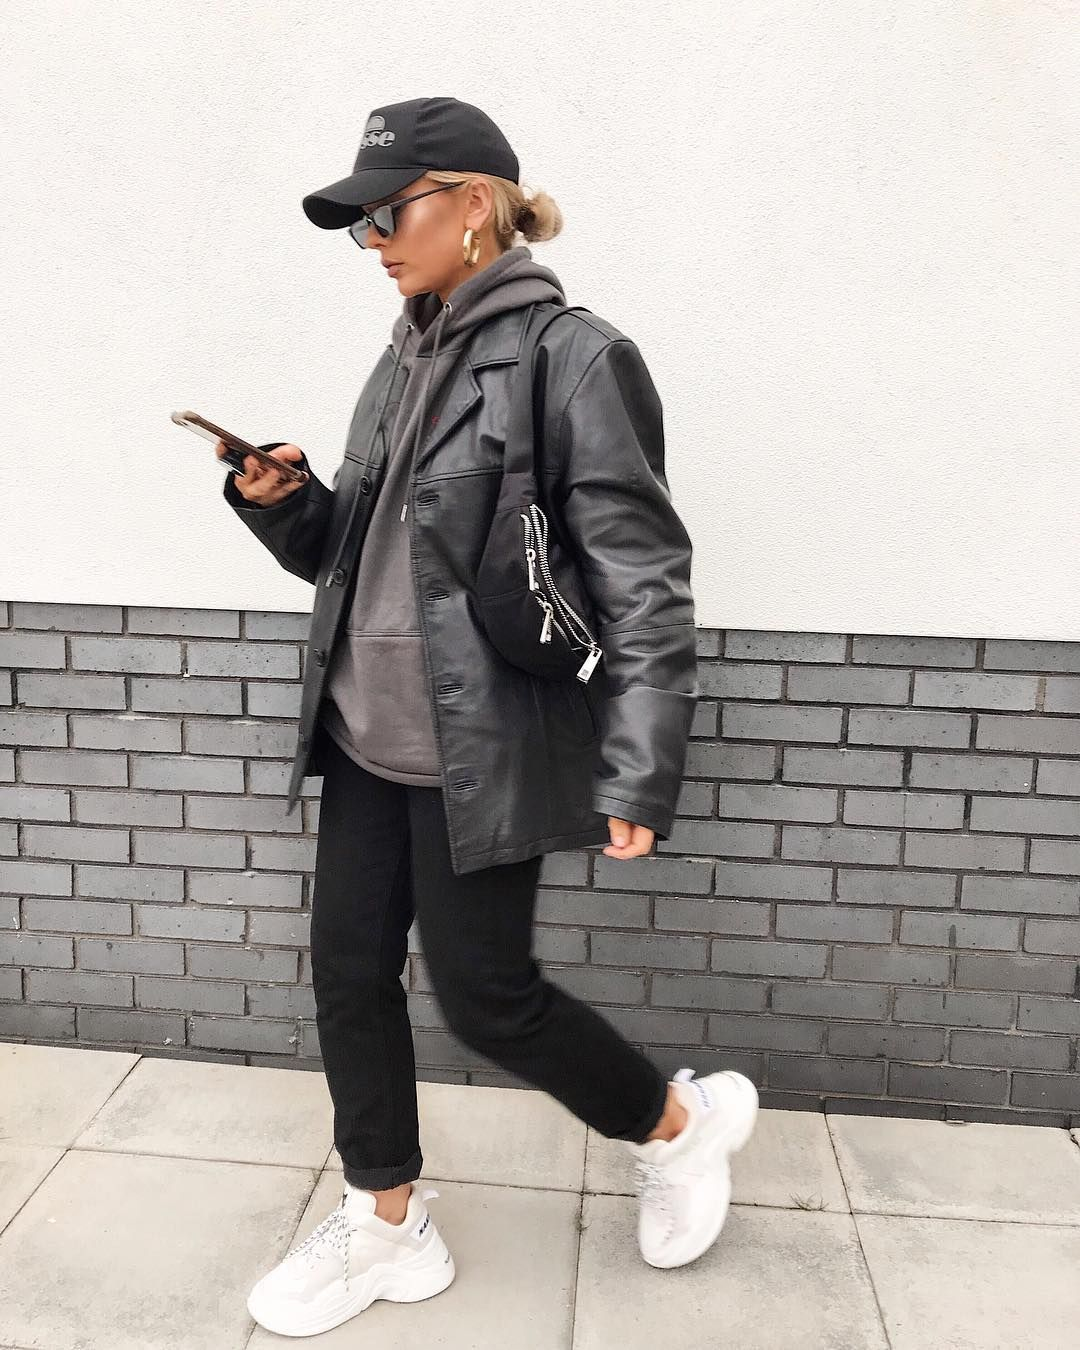 Amy Shaw On Instagram Incognito Mode Jacket Is Vintage 90s From My Local Charity Shop Dressing To Ma In 2020 Mens Jacket Black Street Style Outfit Dad Fashion